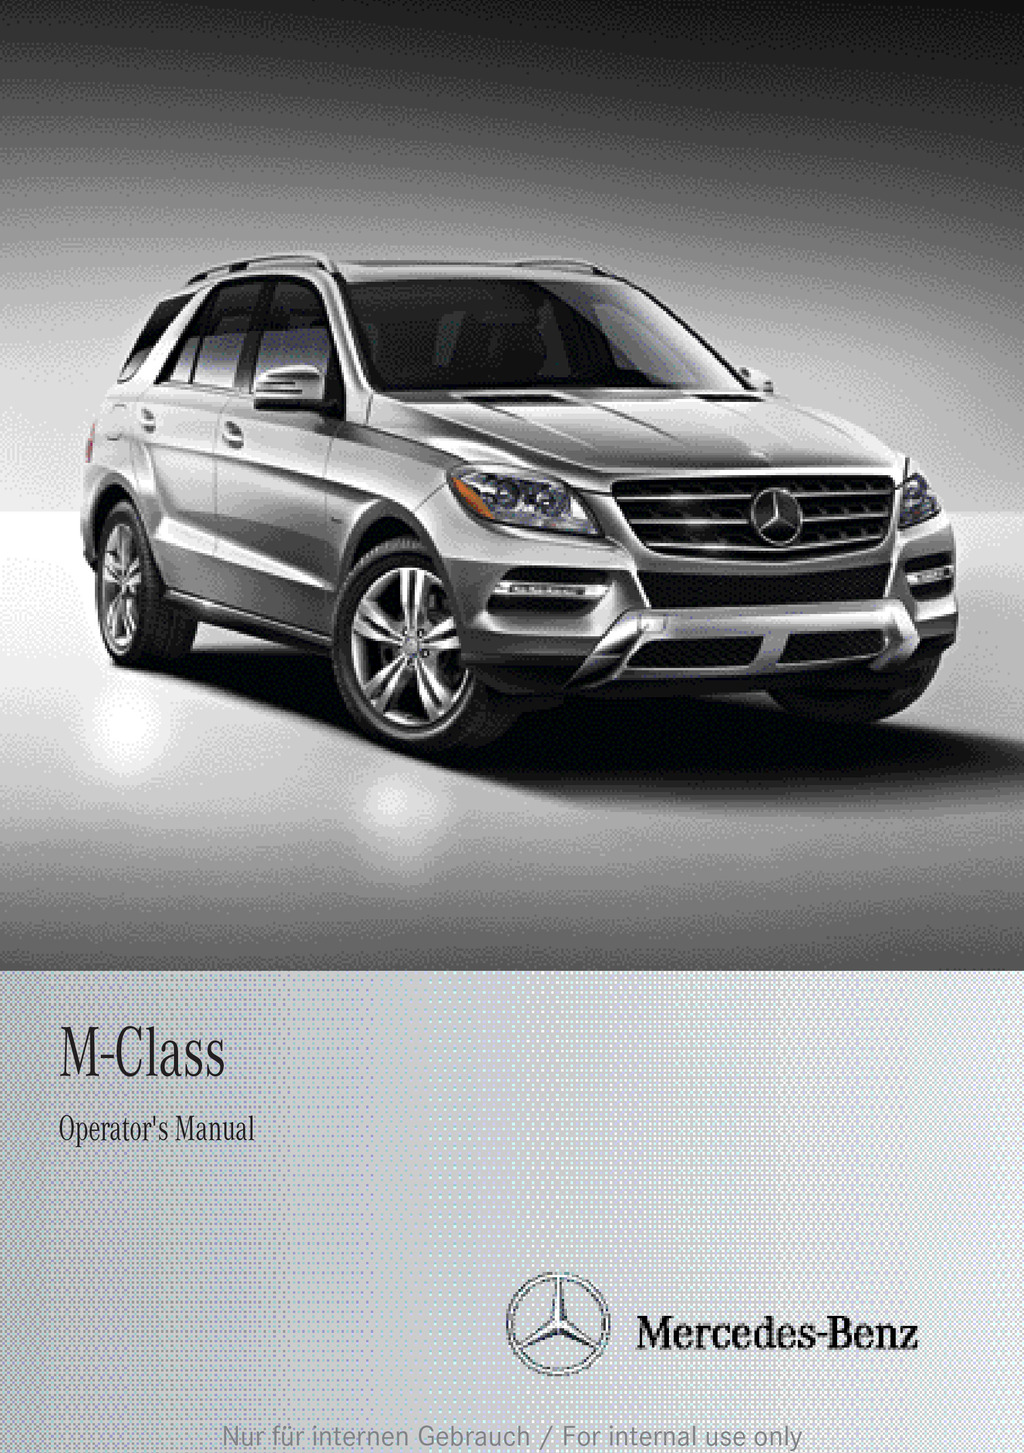 2013 Mercedes-Benz M Class owners manual